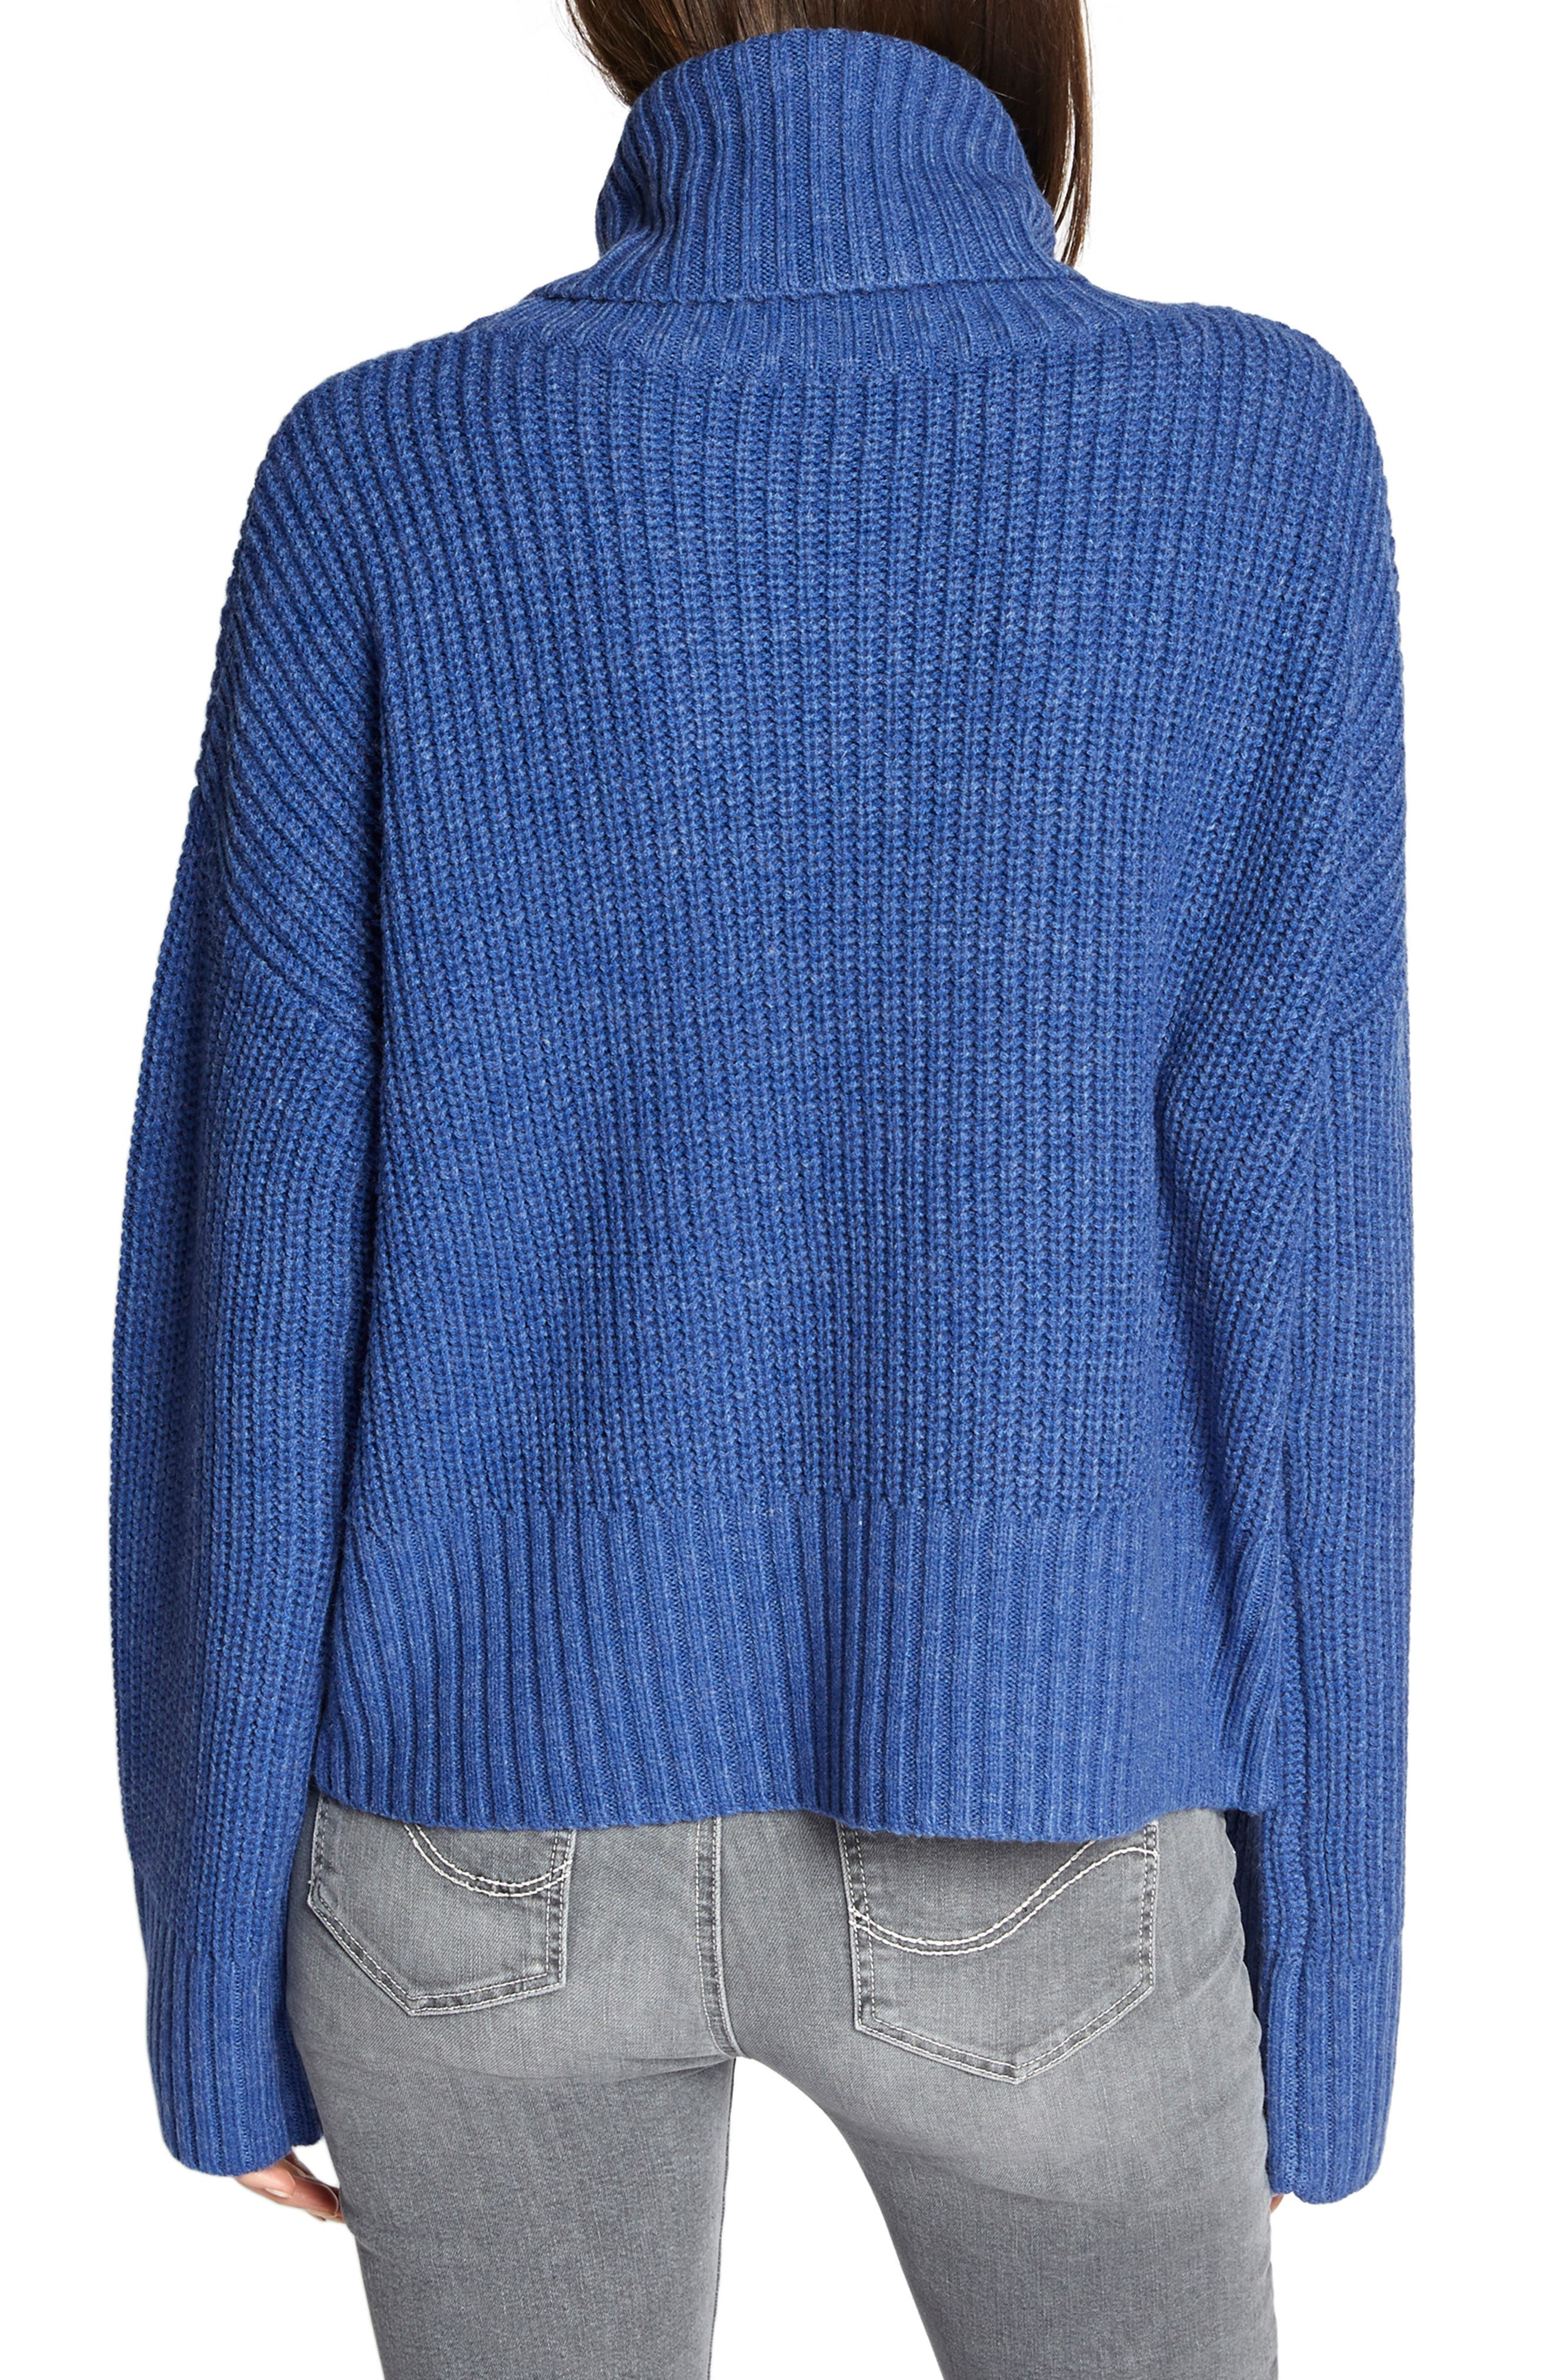 Cowl Neck Shaker Sweater,                             Alternate thumbnail 2, color,                             HEATHER ELECTRIC BLUE